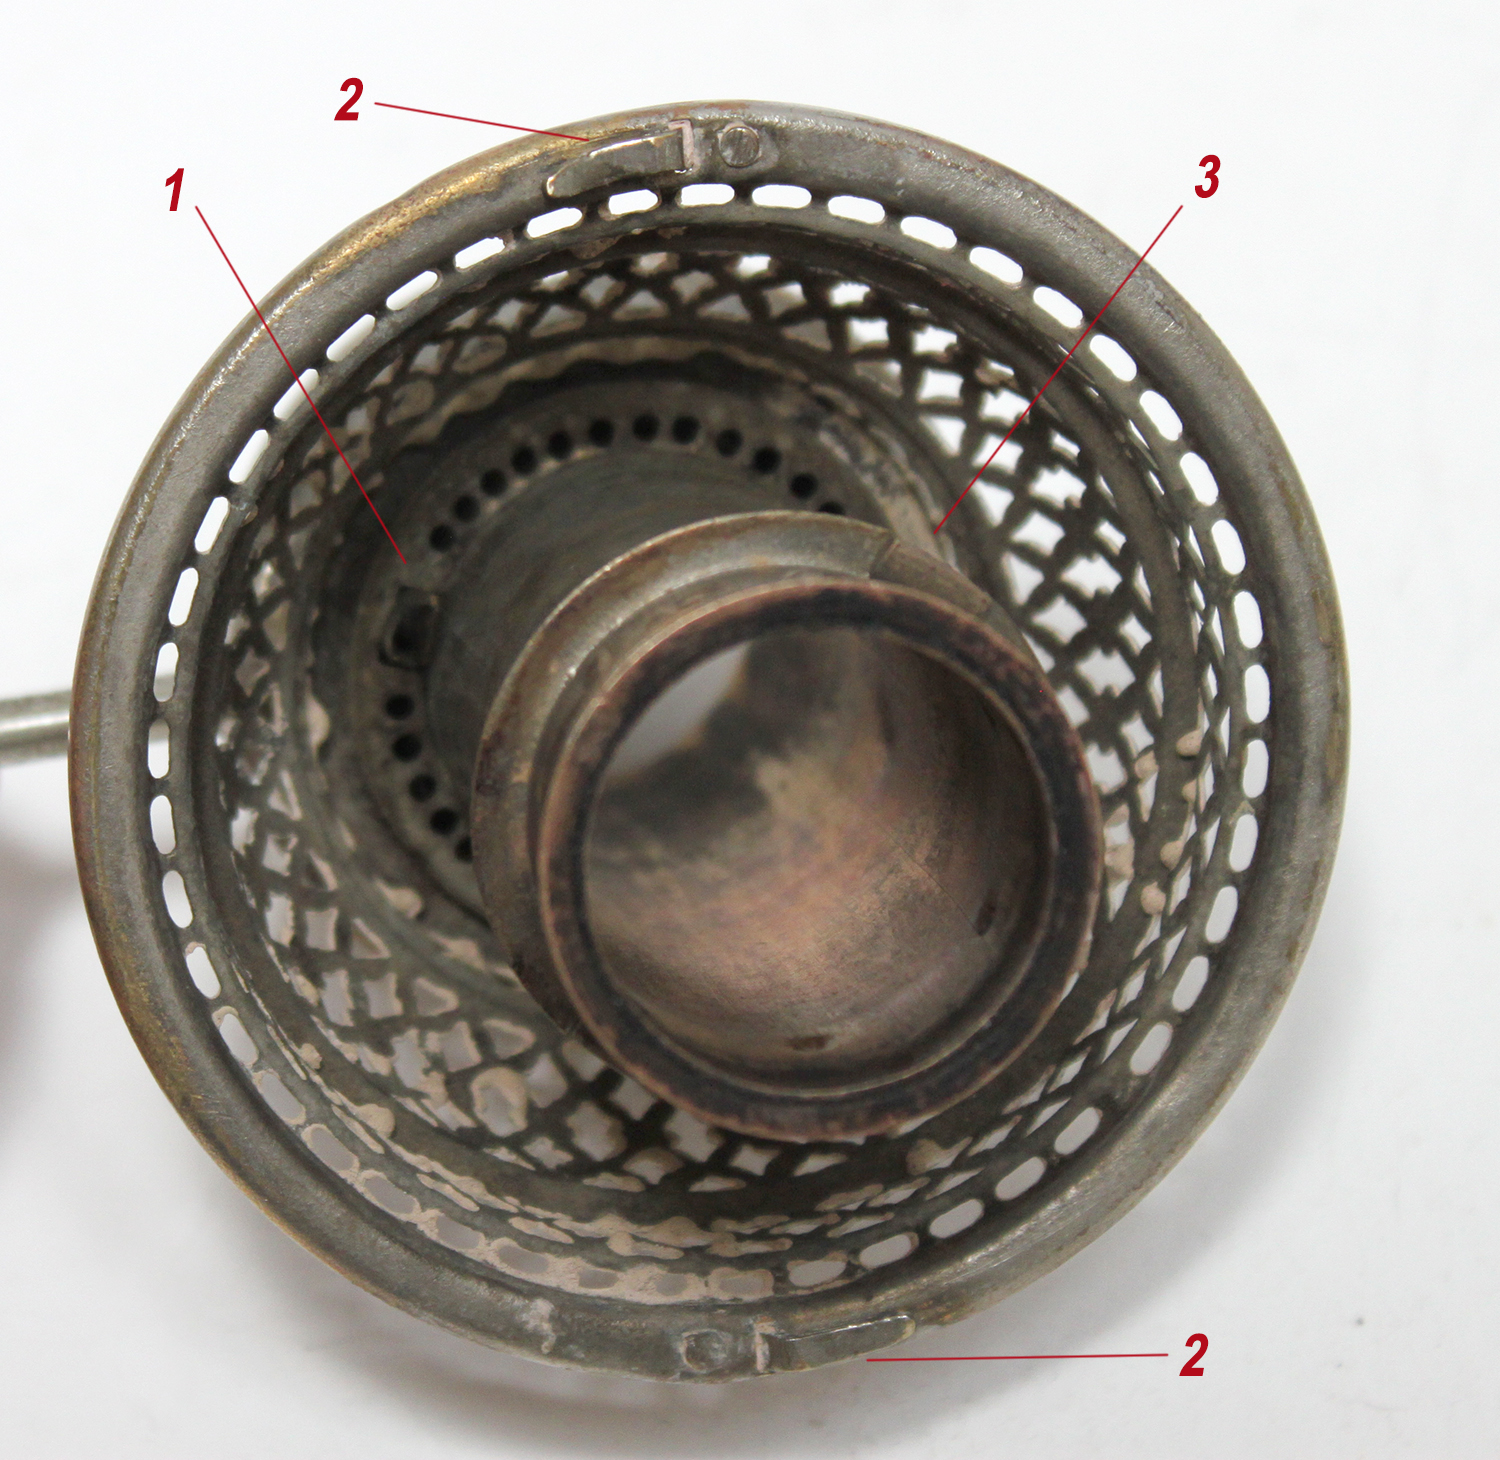 Looking down at a bare Ironclad lamp model 2 burner basket